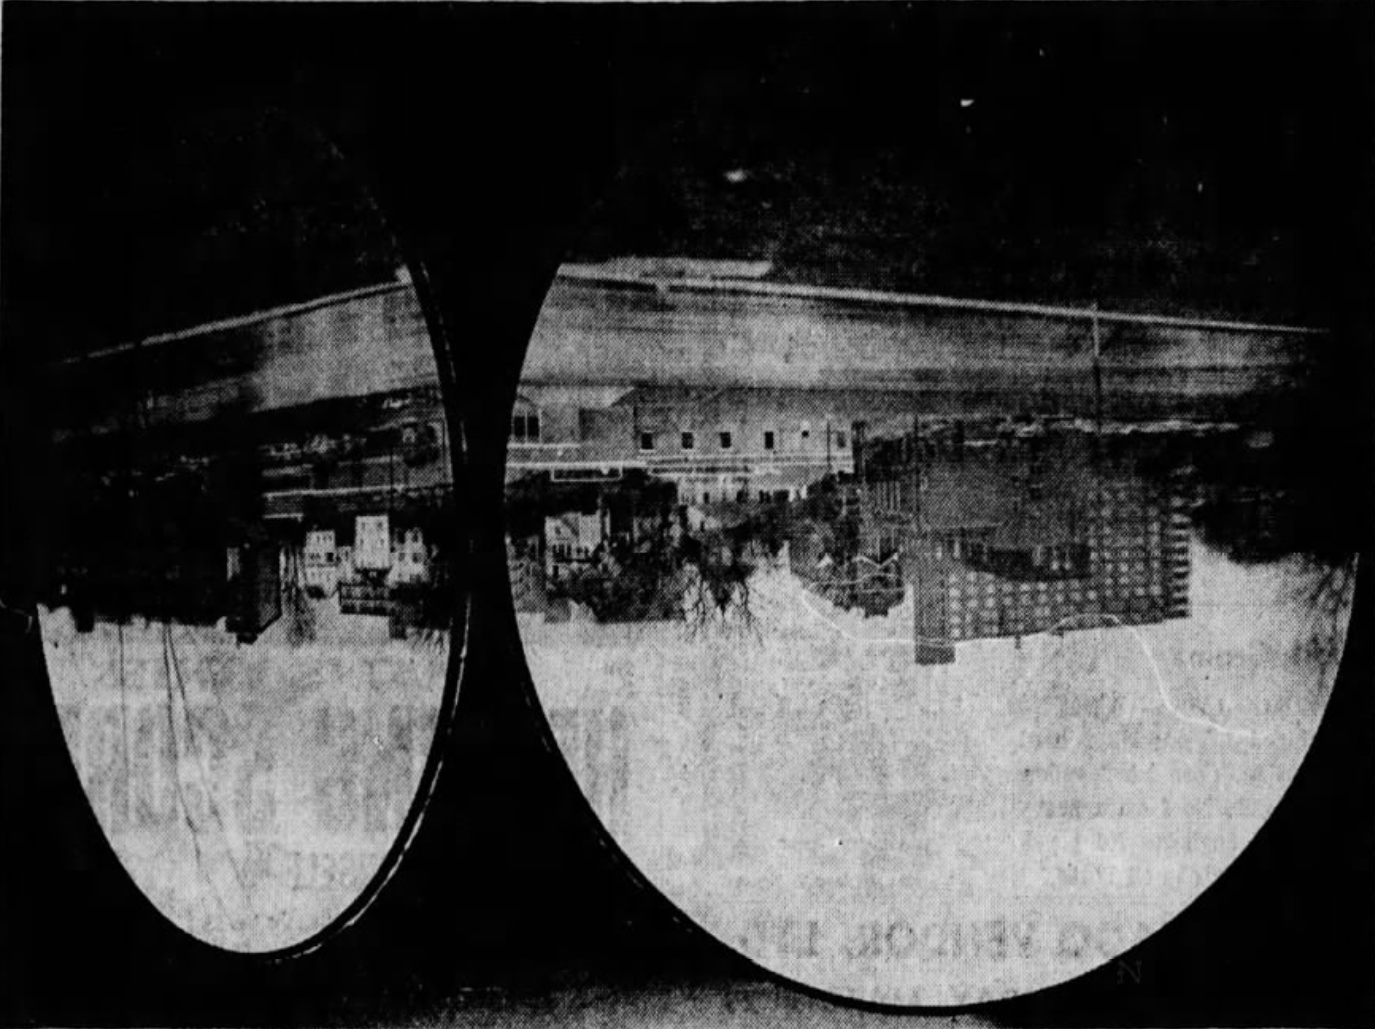 "This March 25, 1971 Press-Citizen newspaper clipping, originally published with the caption, ""'IOWA VIEW' - This upside-down view was created by New York artist Ted Victoria in a darkened gallery of the University of Iowa Museum of Art overlooking the Iowa River,"" it read. ""To focus the view from across the river on the round screens six and a half feet in diameter, Victoria placed a large lens in the center of the gallery window (behind the screen at the right), covered the rest of the window with black plastic, and positioned the screens at the distance required by the lens. Titled ""Iowa View"" and commissioned for the UI Museum, the unusual work will be shown during Accessions: 1970-71, an exhibition of recently acquired art works which will open May 8 at the museum."""